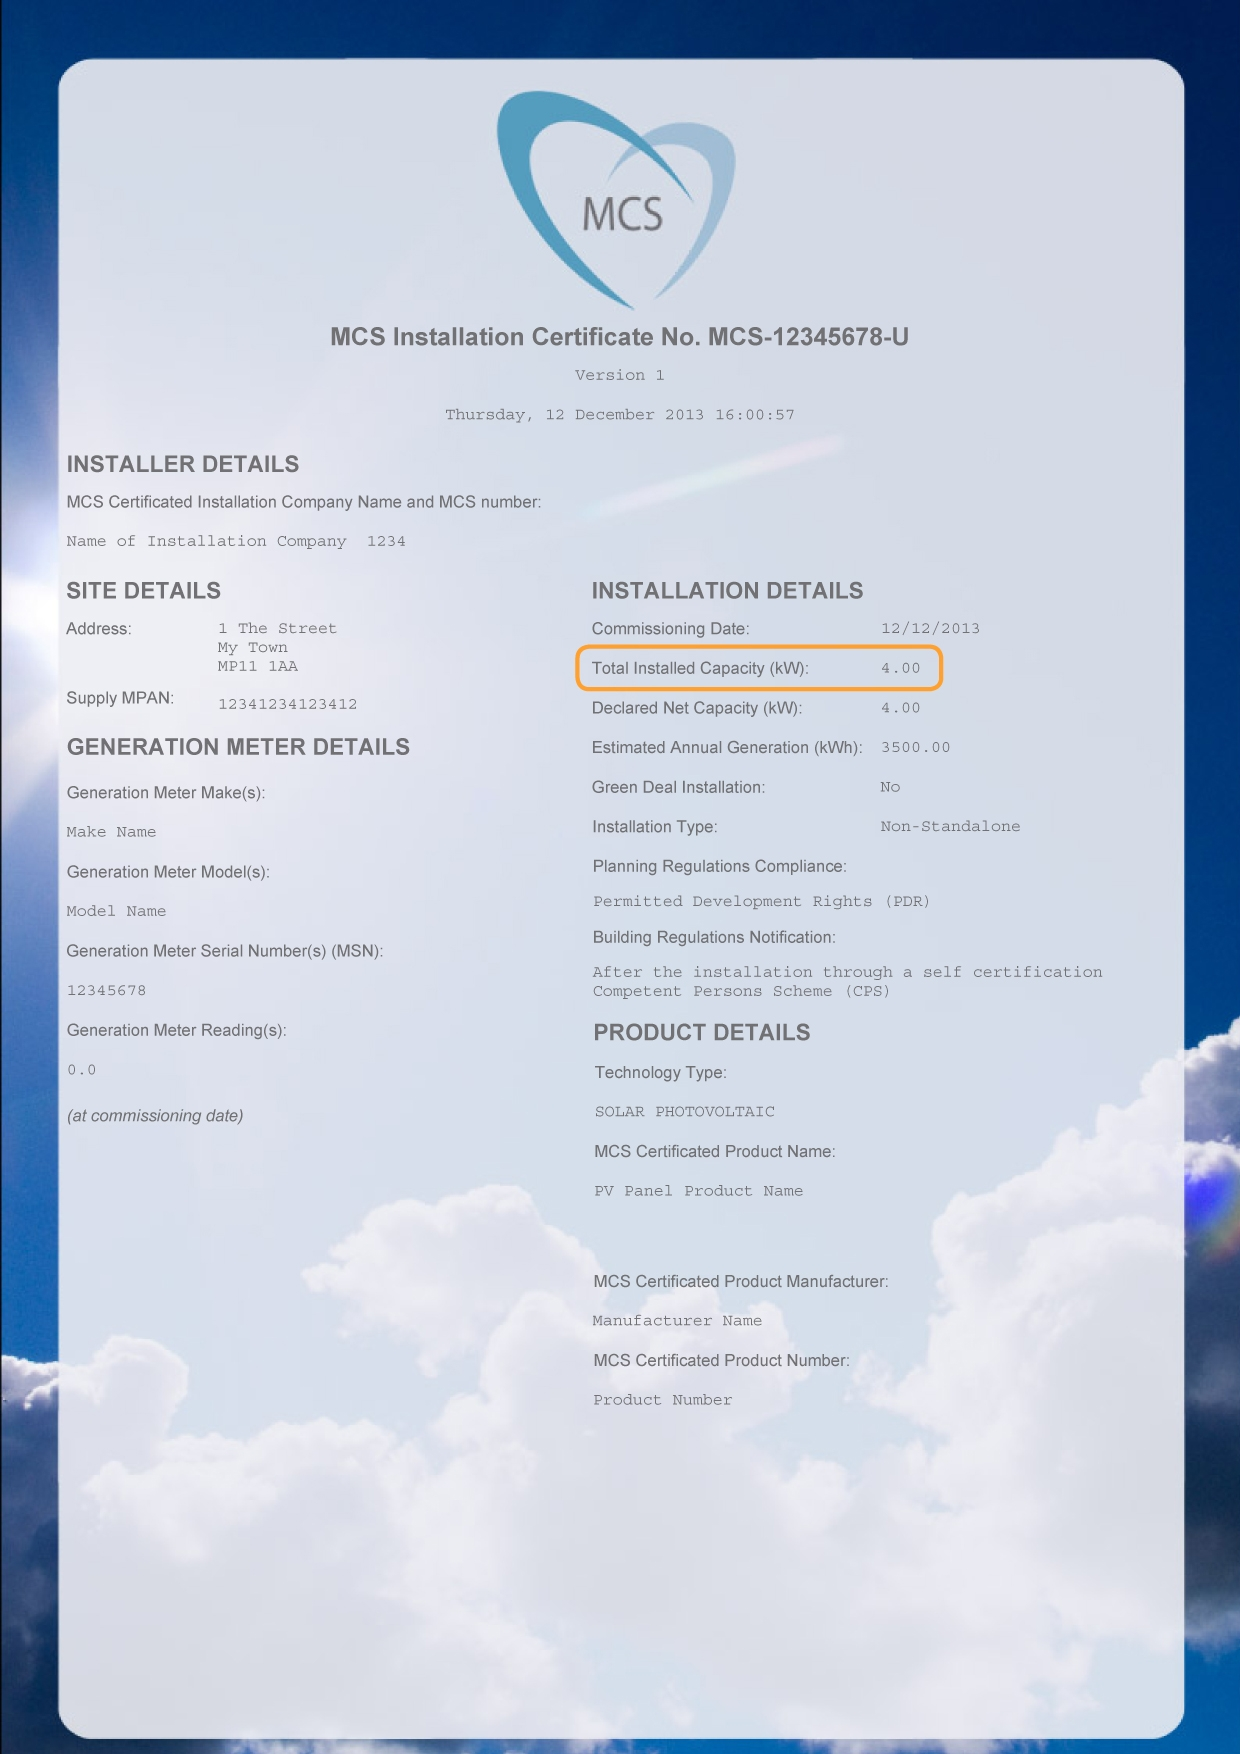 MCS installation certificate - total installed capacity